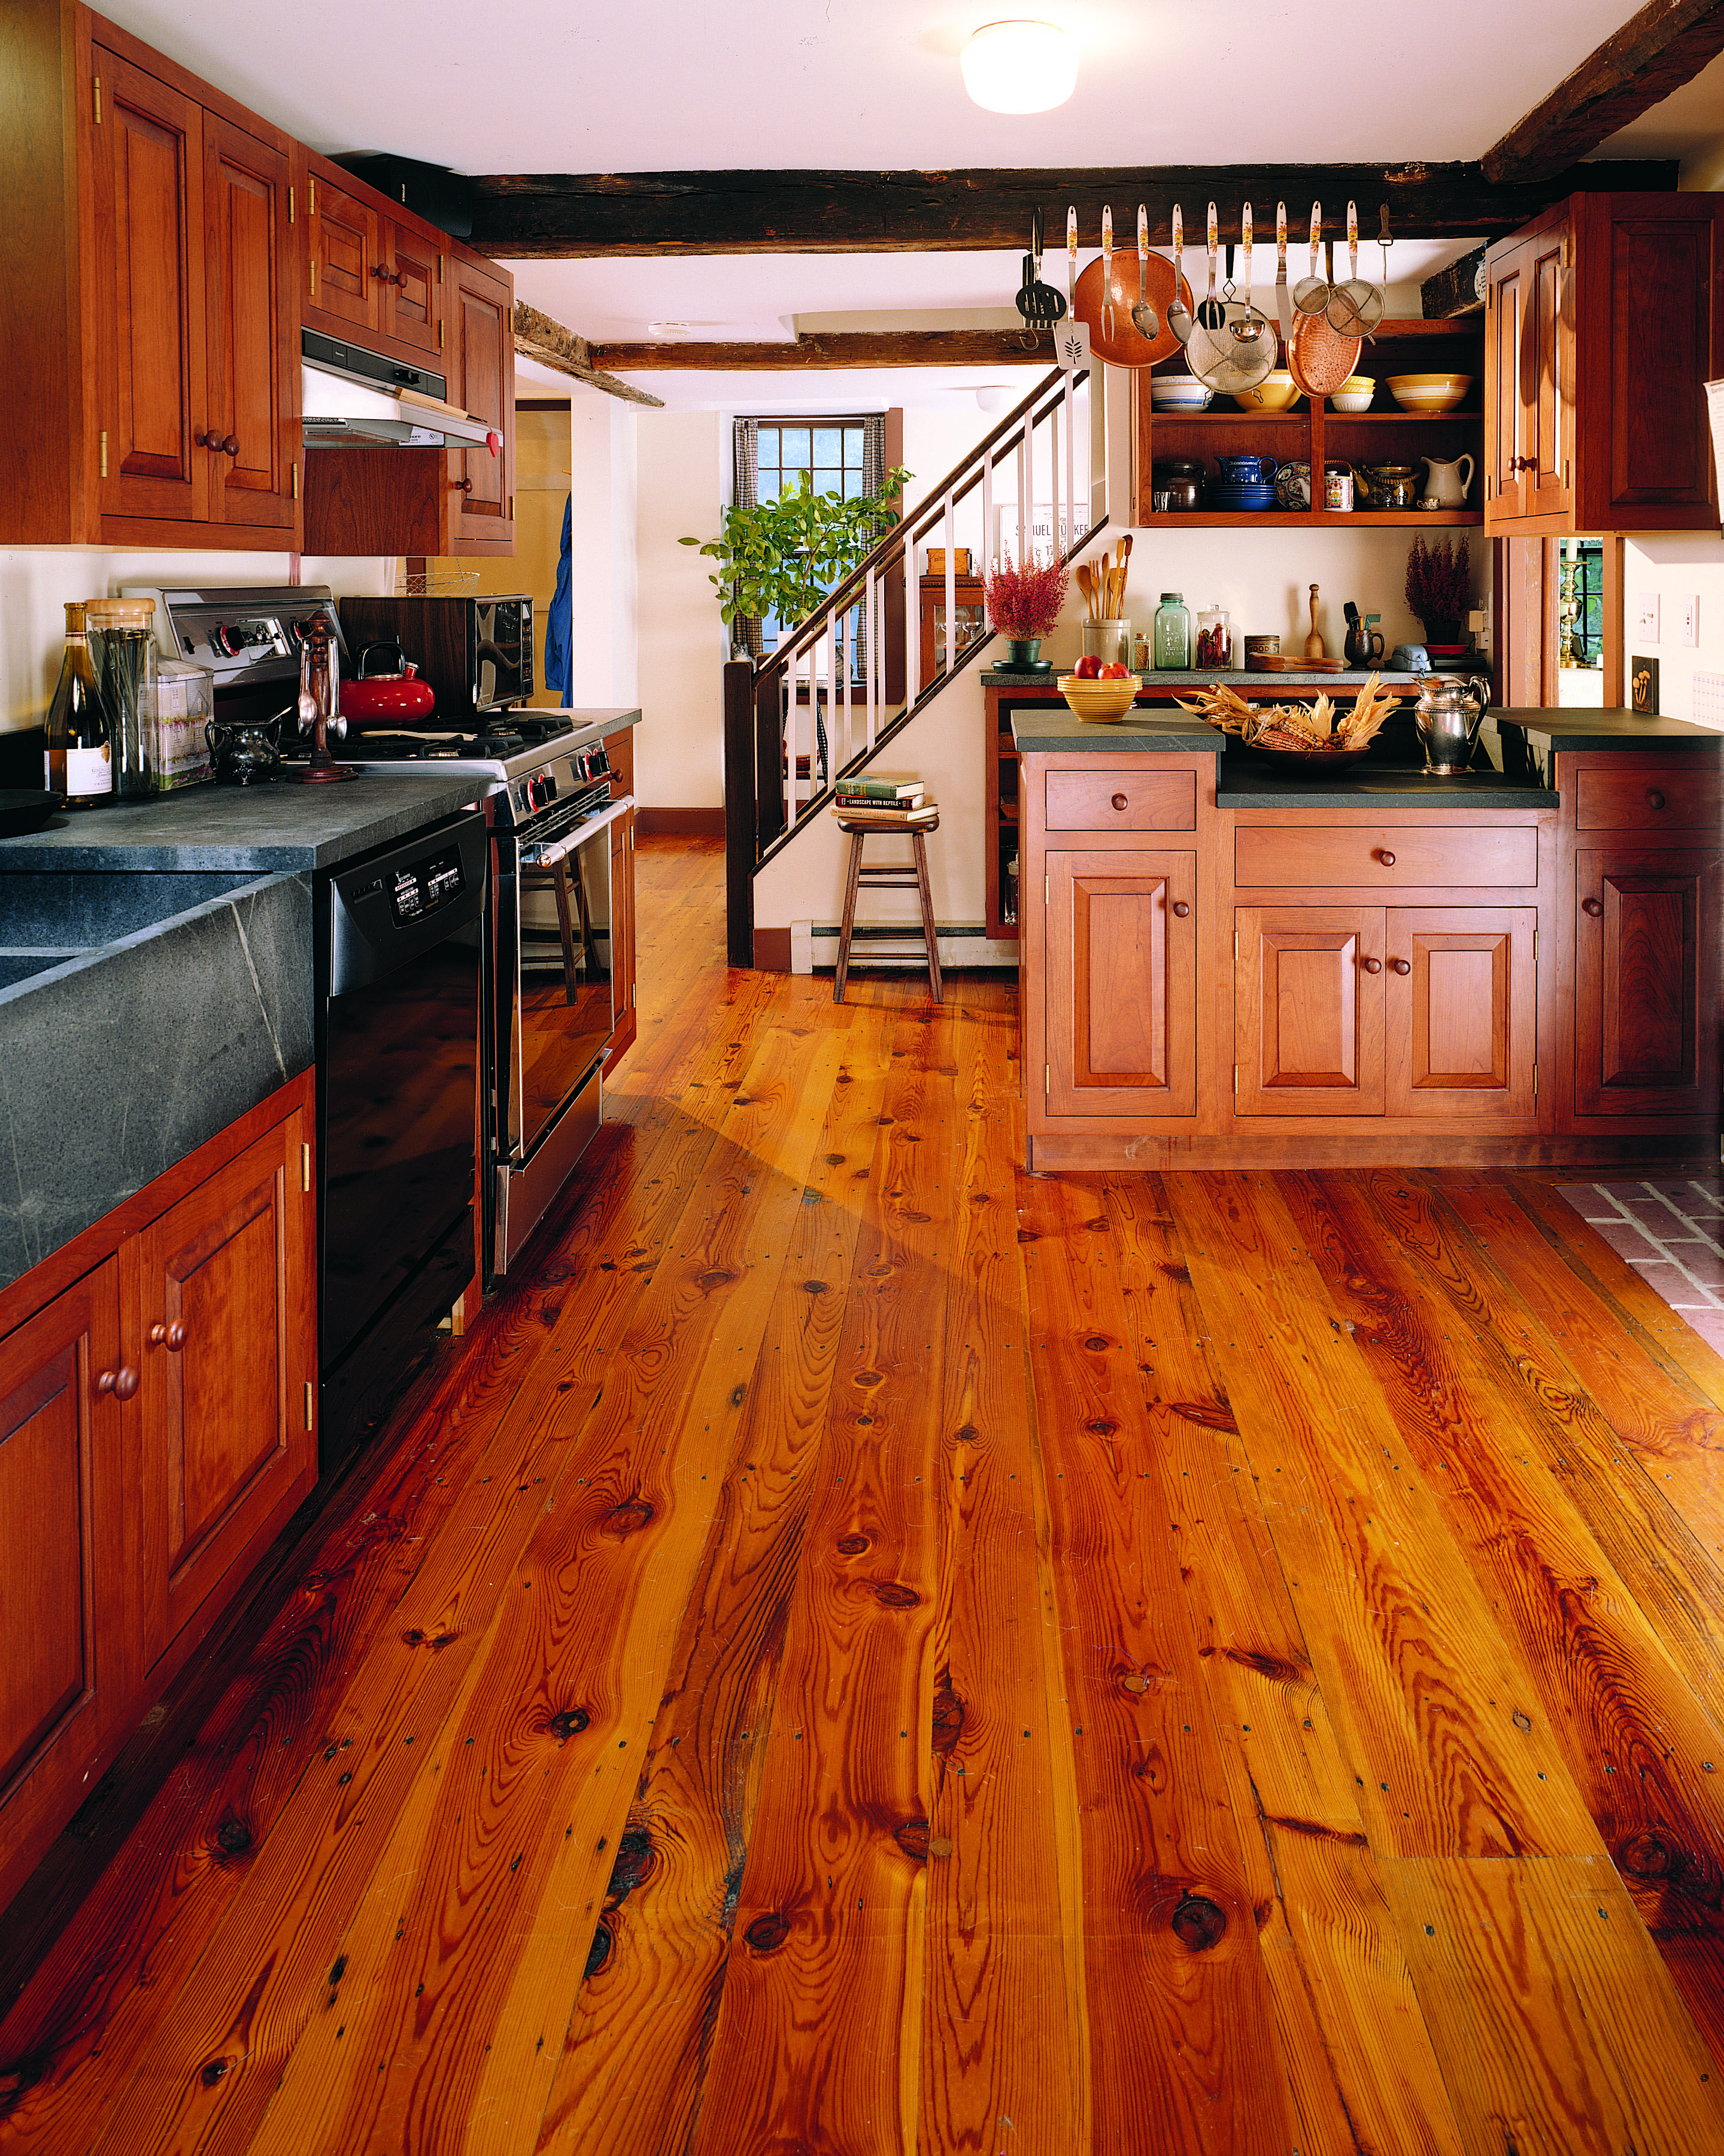 Carlisle Wide Plank Floors Reclaimed Heart Pine Flooring In Kitchen The Quality Of A Floor Is Matched Only By That Customer Experience